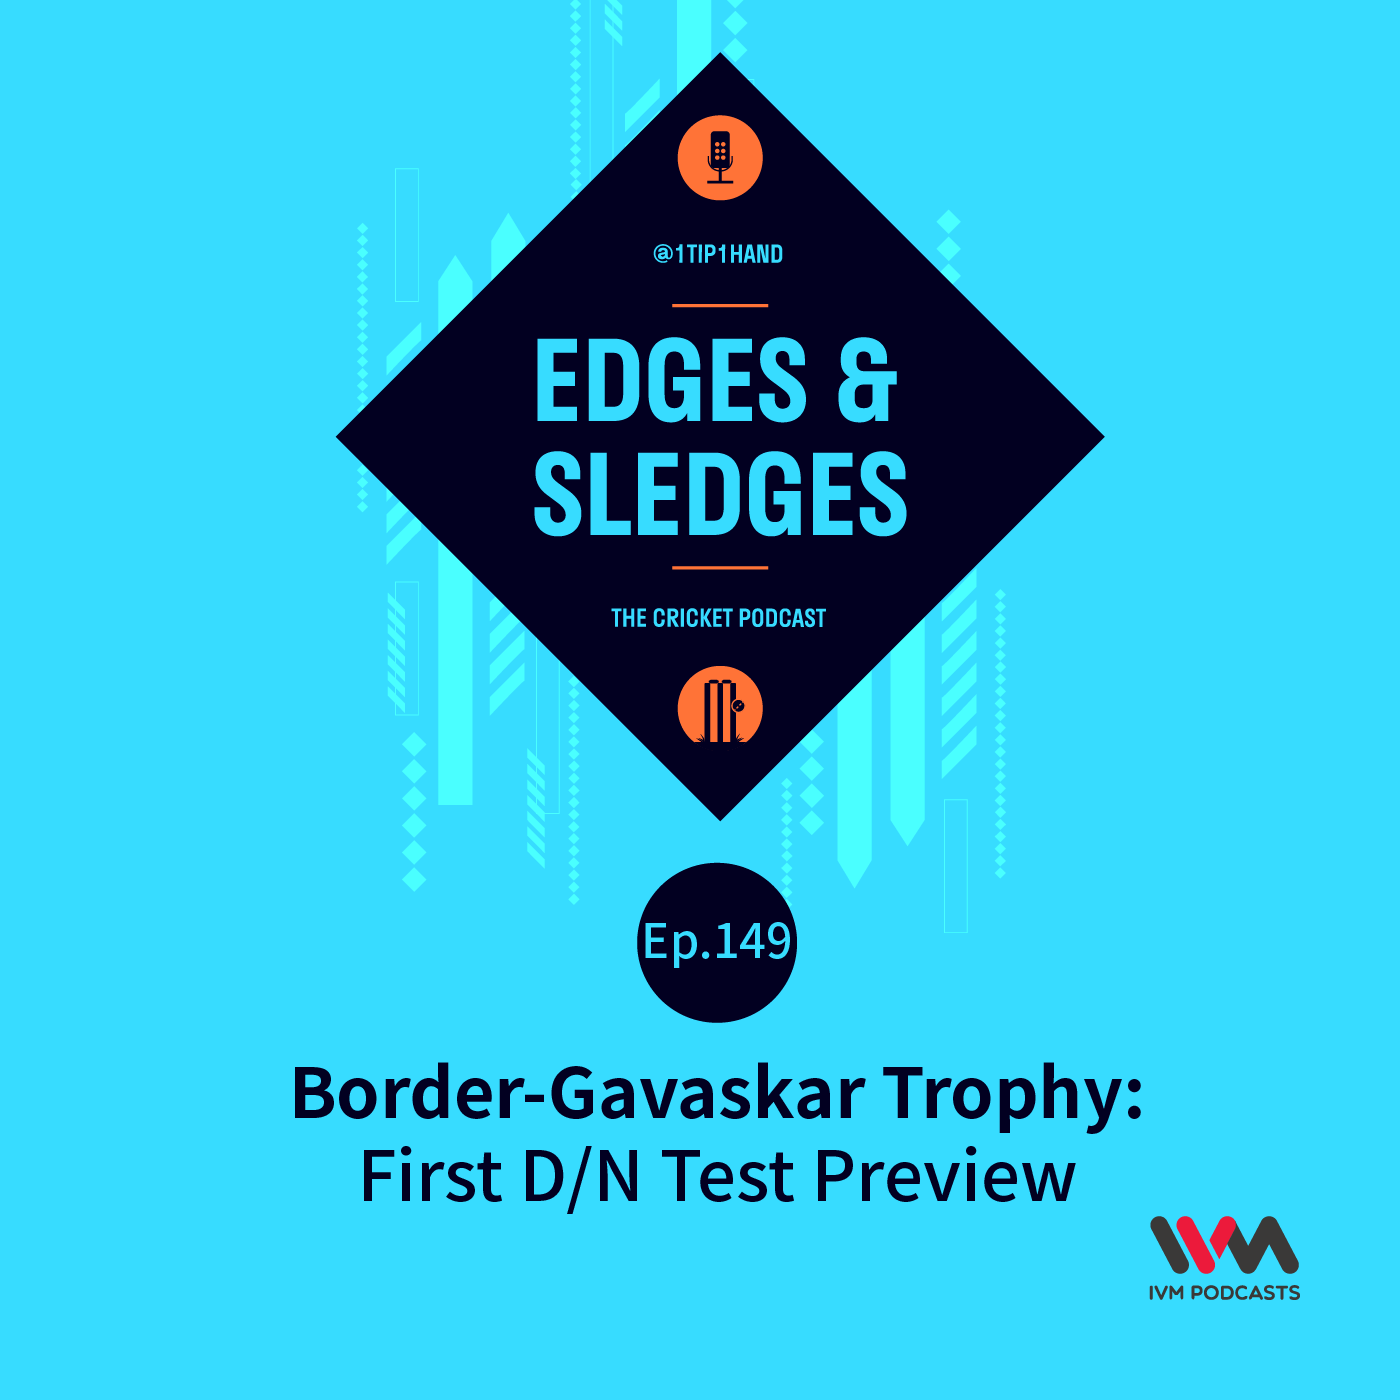 Ep. 149: Border-Gavaskar Trophy: First D/N Test Preview